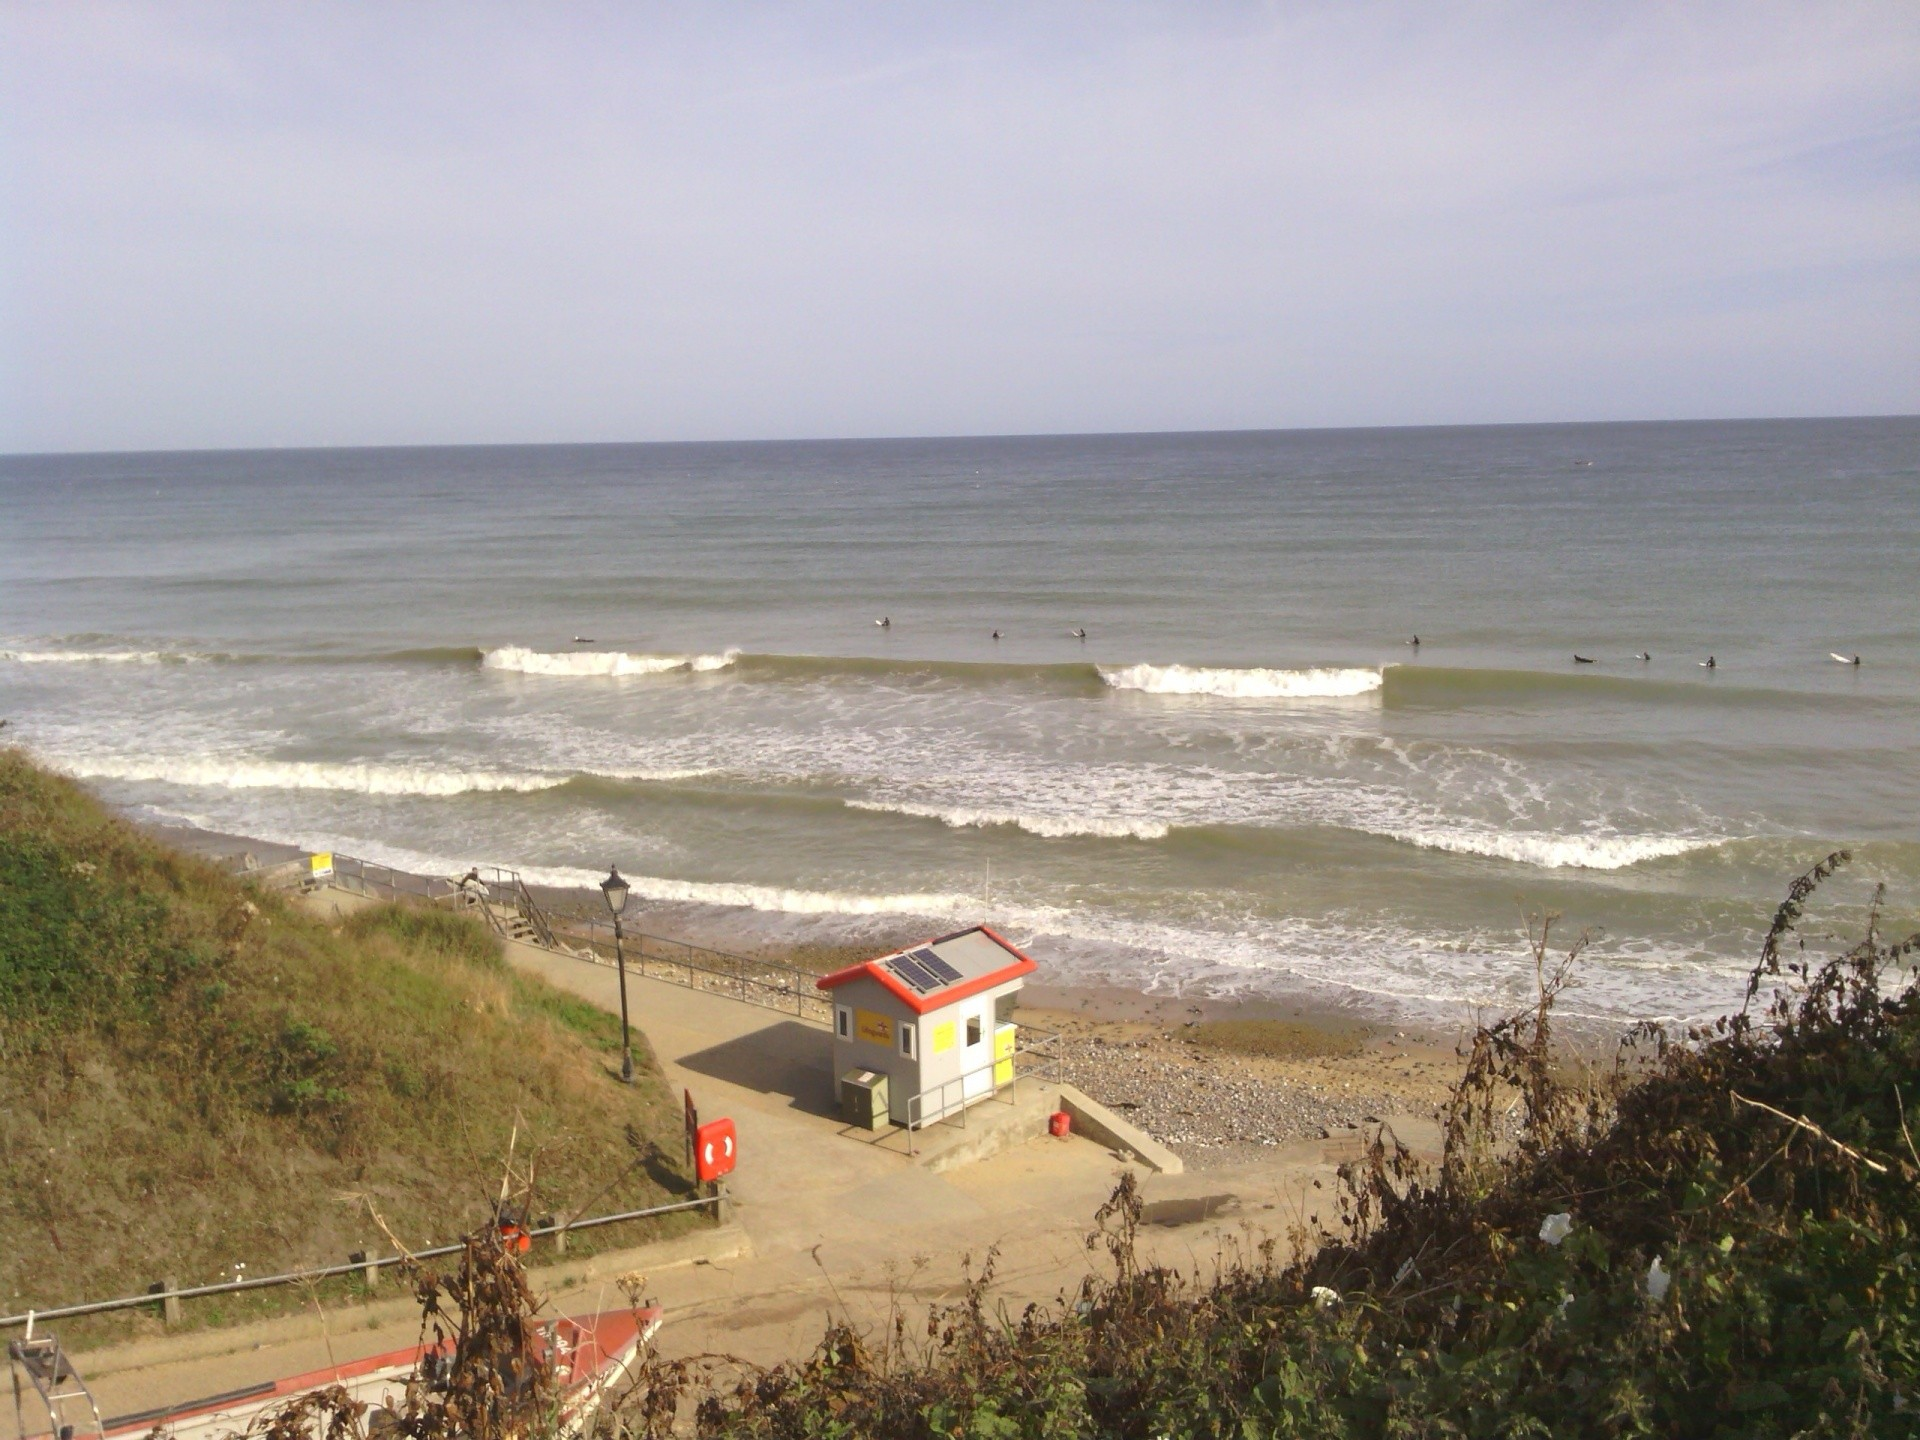 nickramble's photo of East Runton